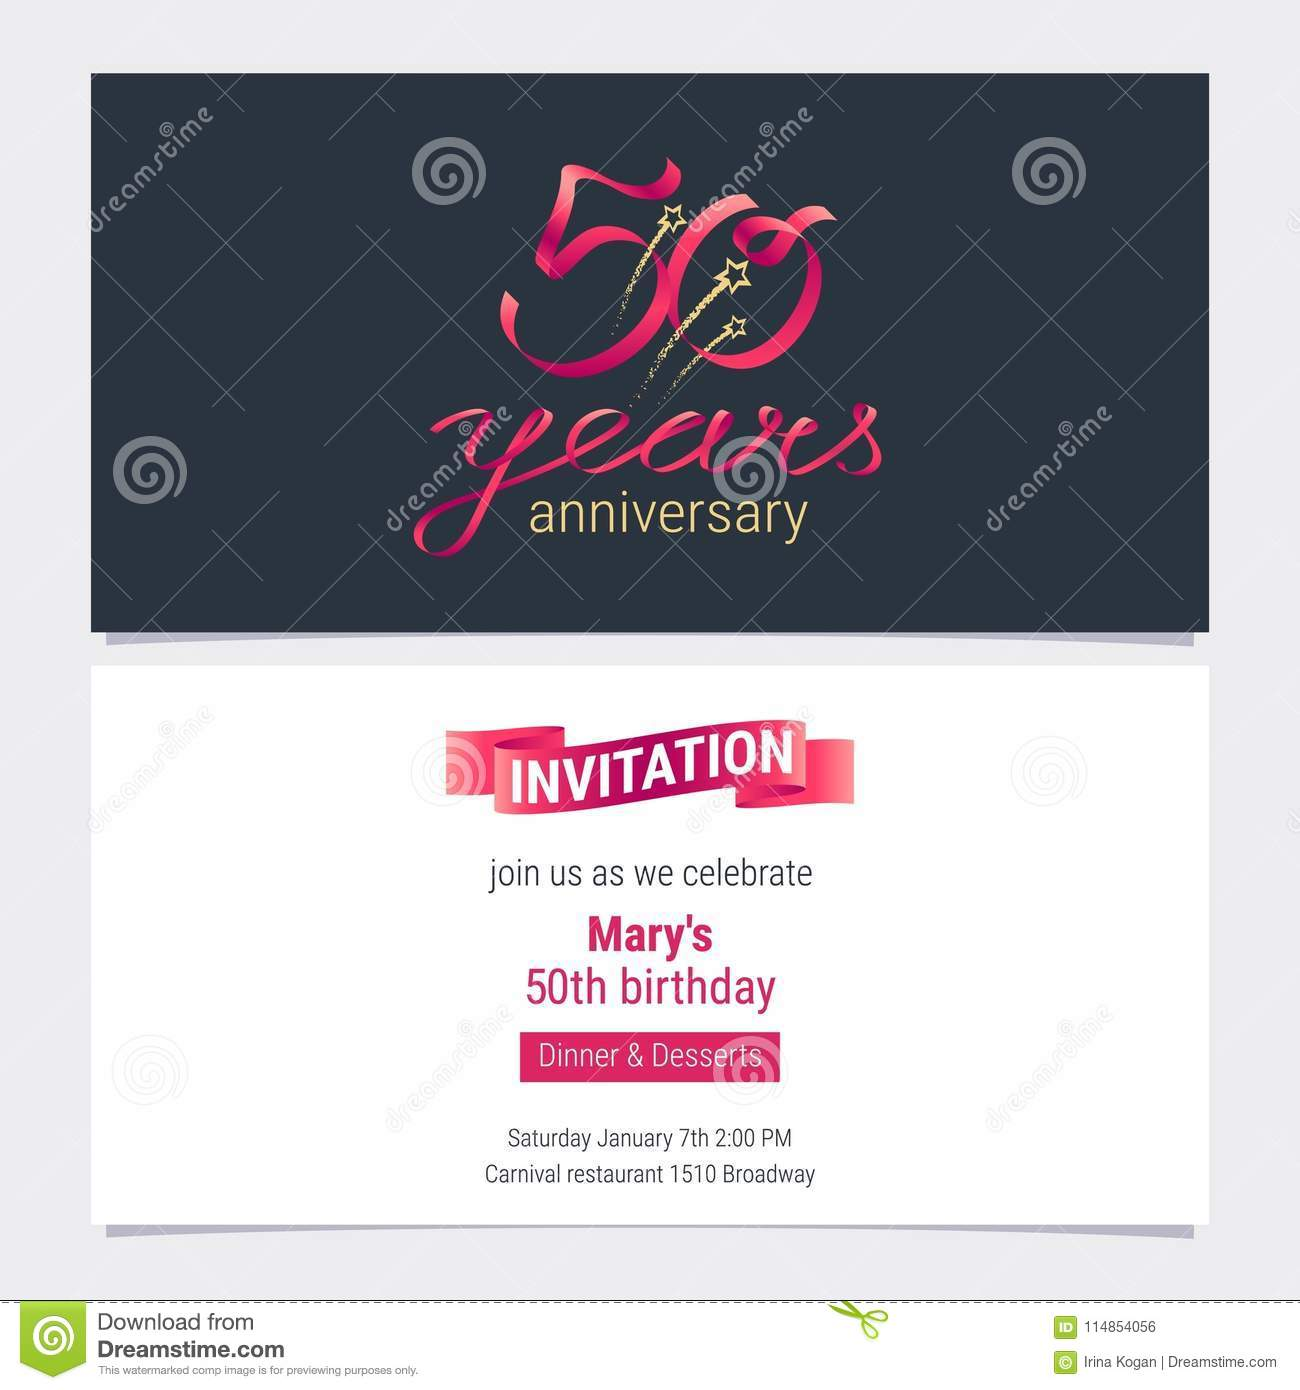 50 Years Anniversary Invite Vector Illustration Graphic Design Element For 50th Birthday Card Party Invitation